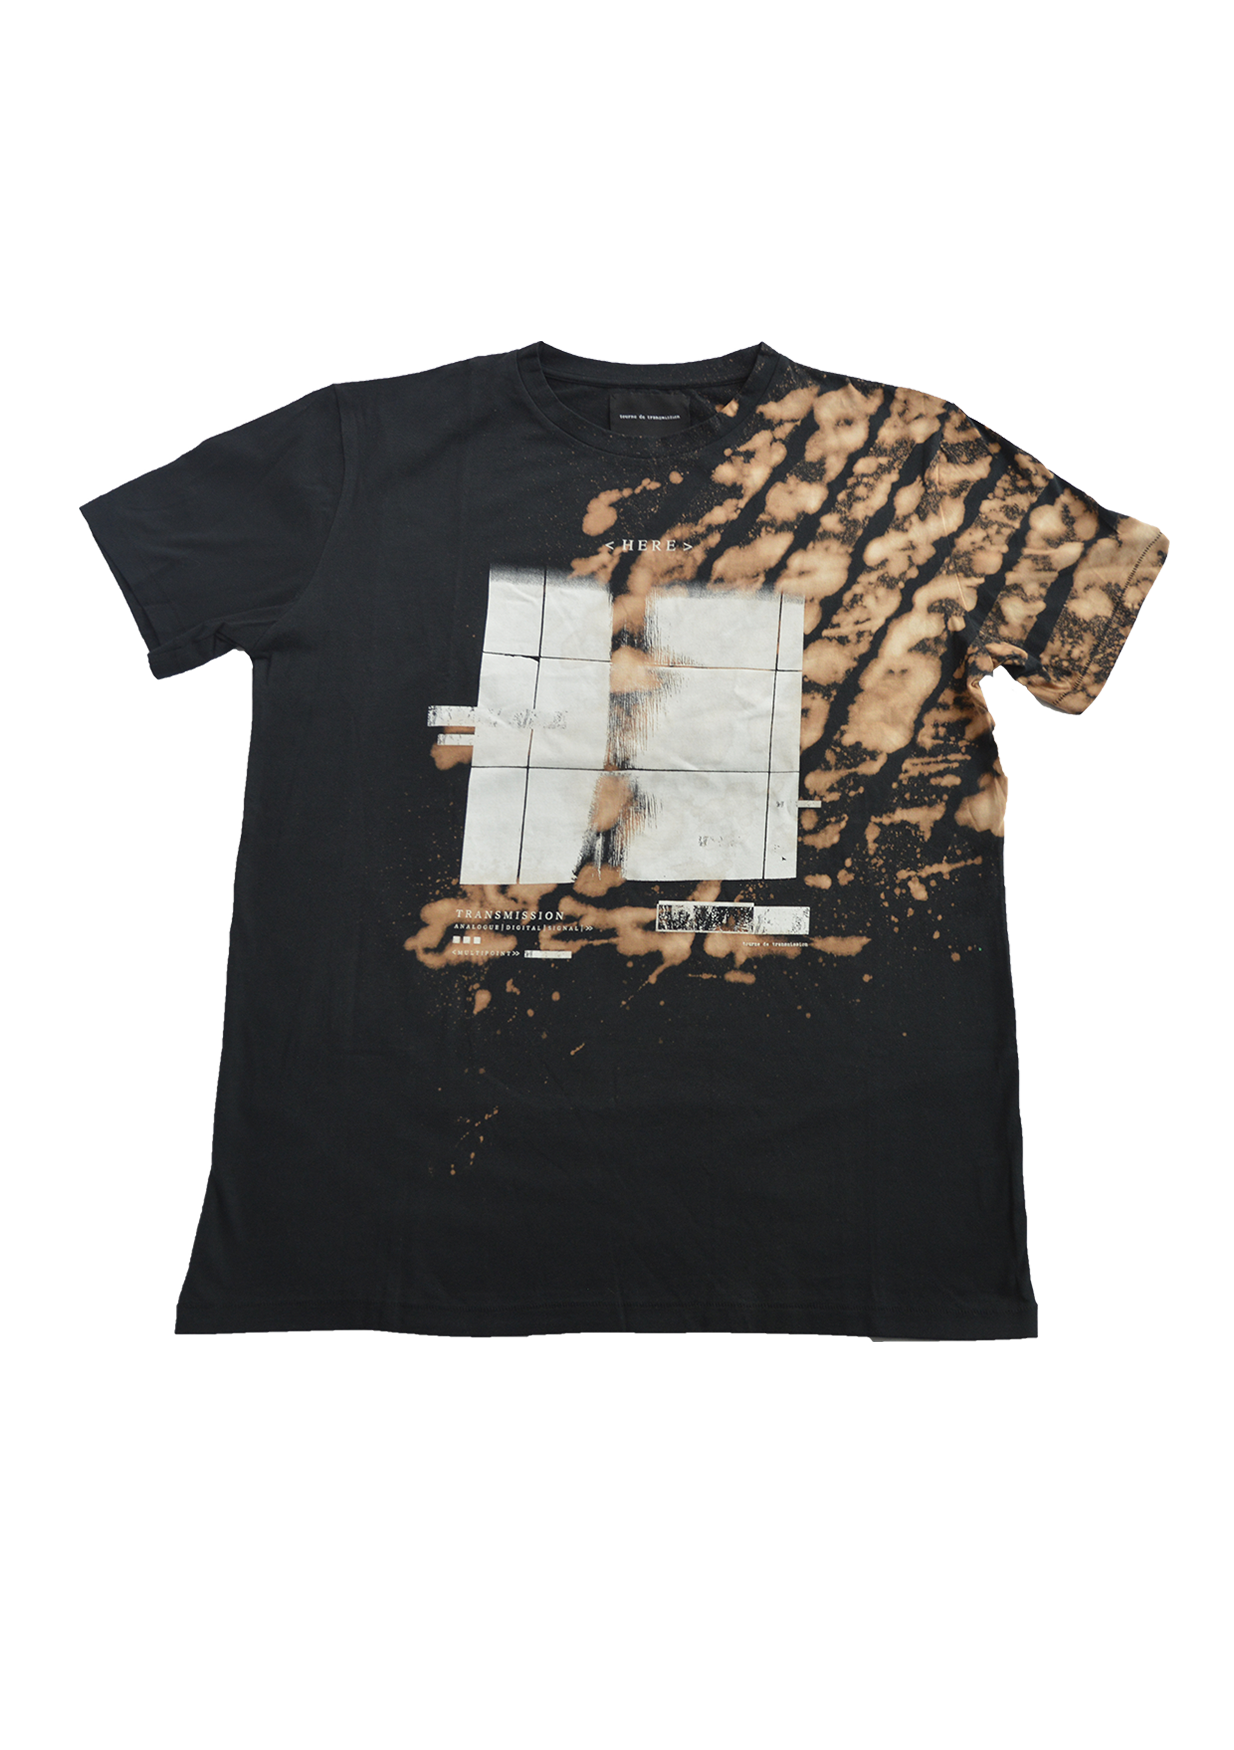 SS15 'Here soulage' tee - black